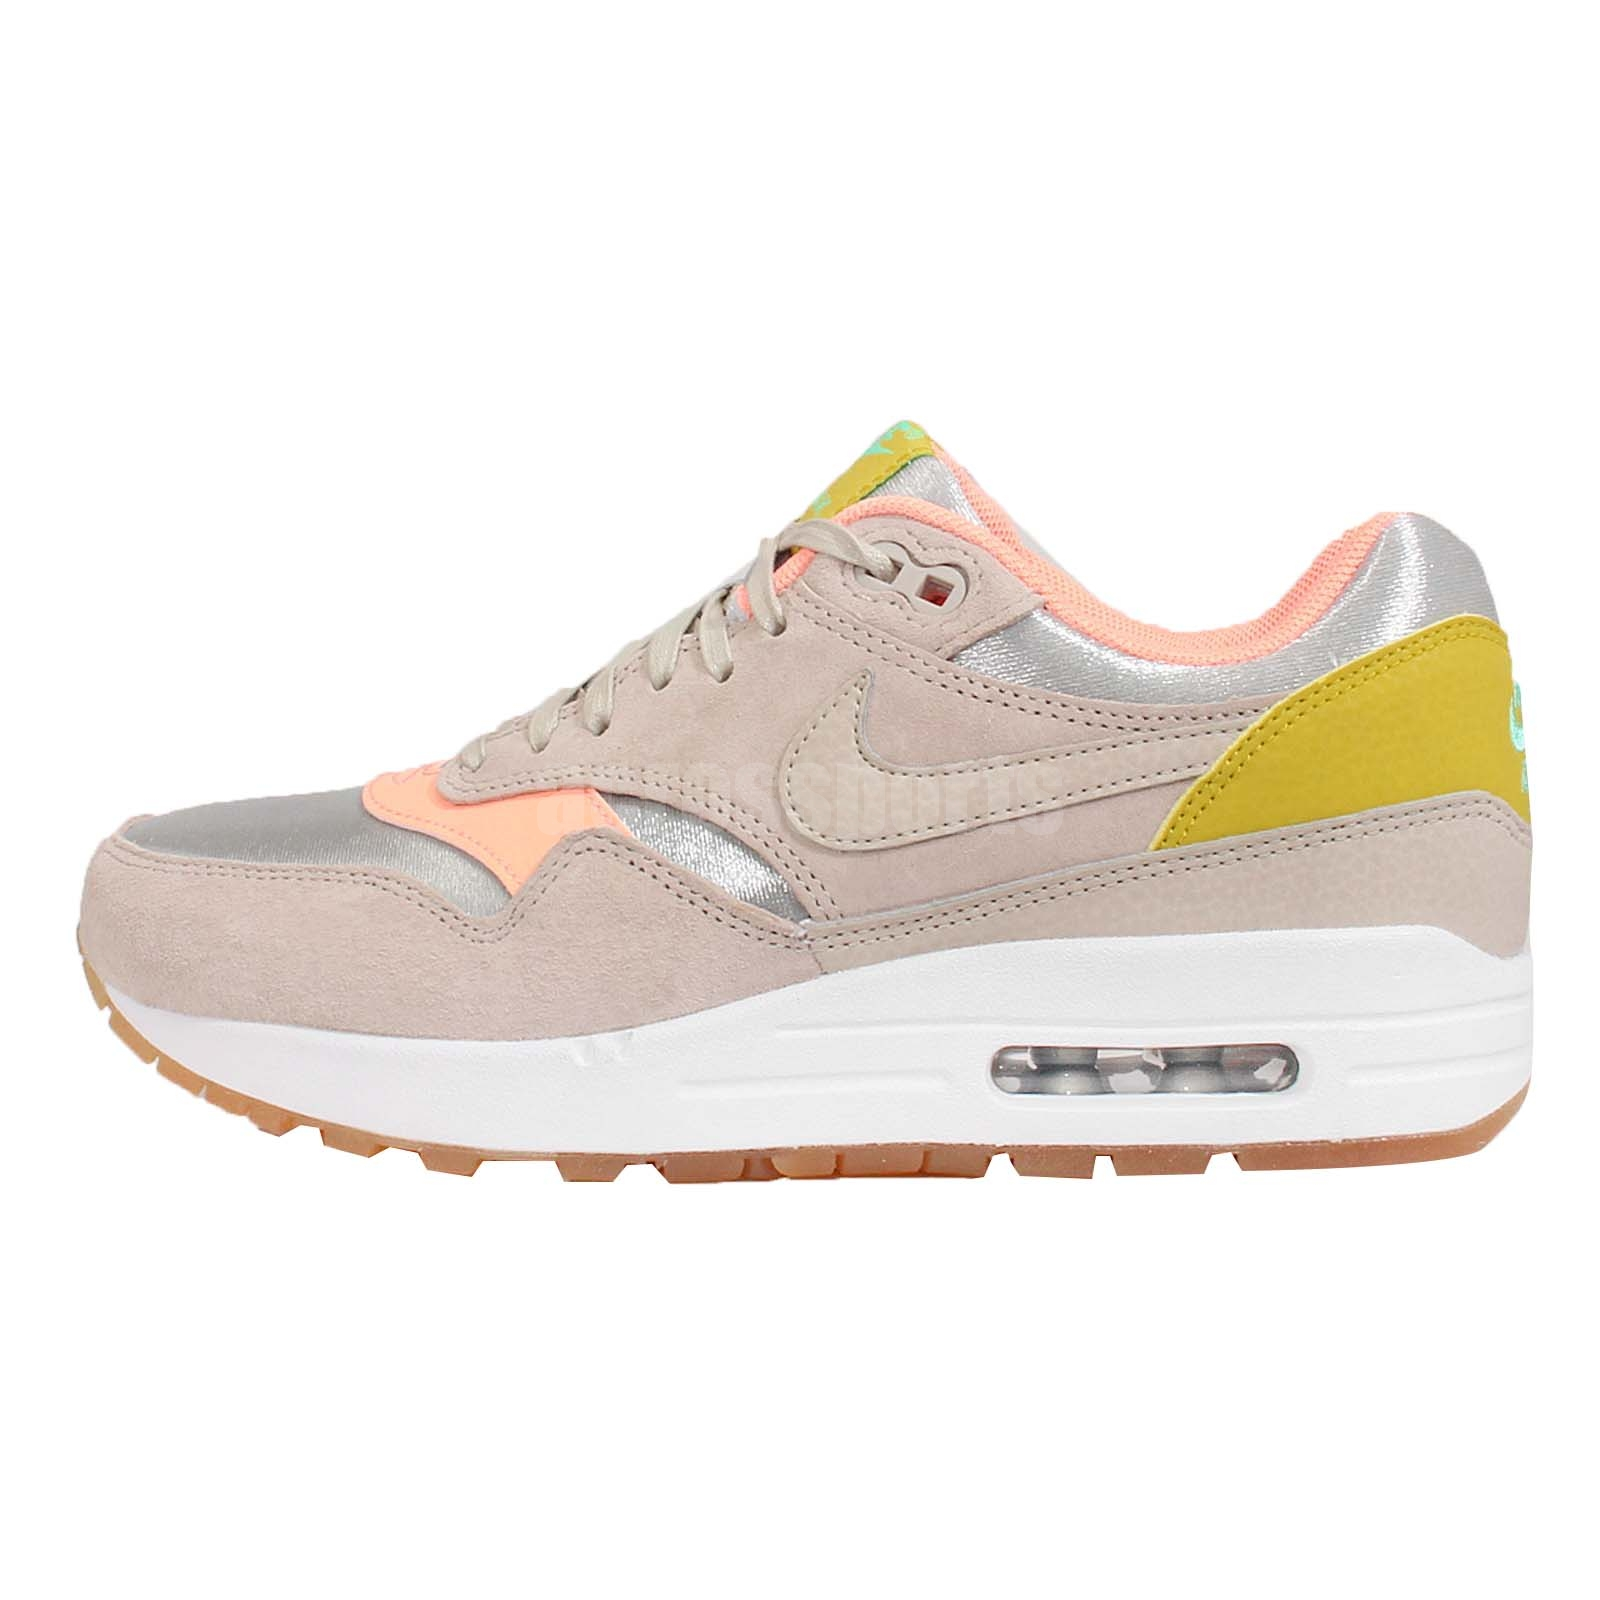 Wmns Nike Air Max 1 PRM Premium Sunset Glow NSW Womens Running Shoes 454746-006